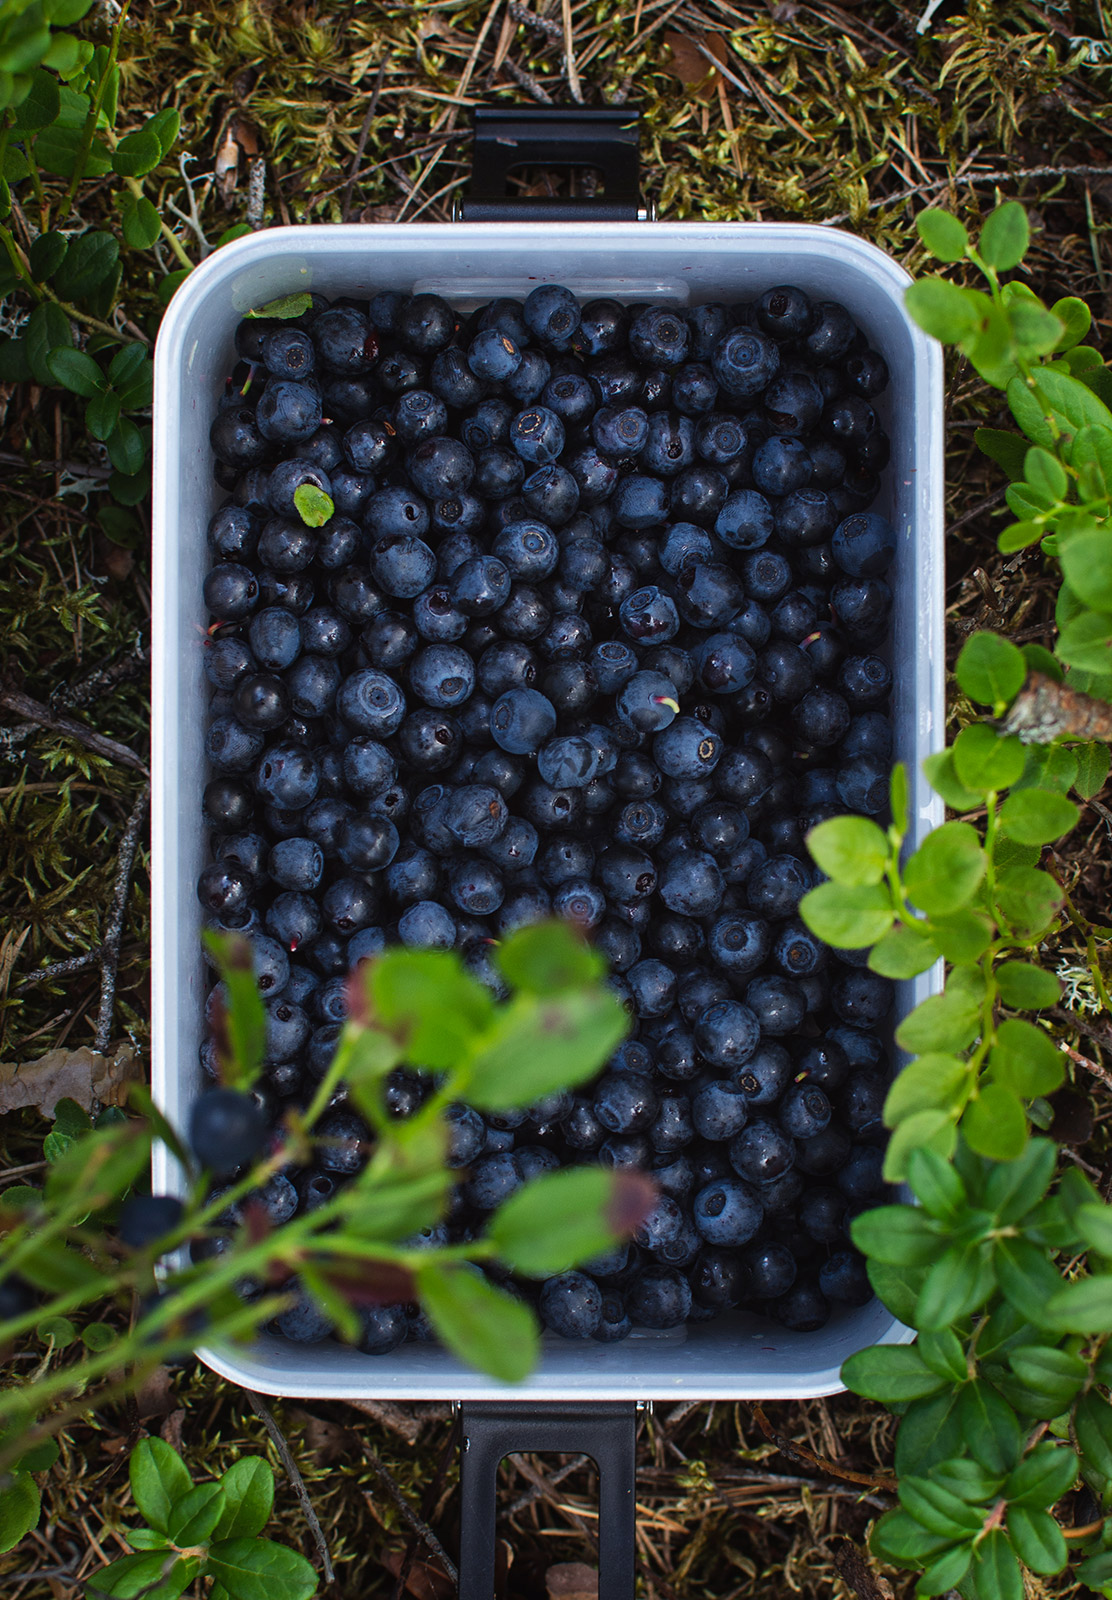 Pot of blueberries